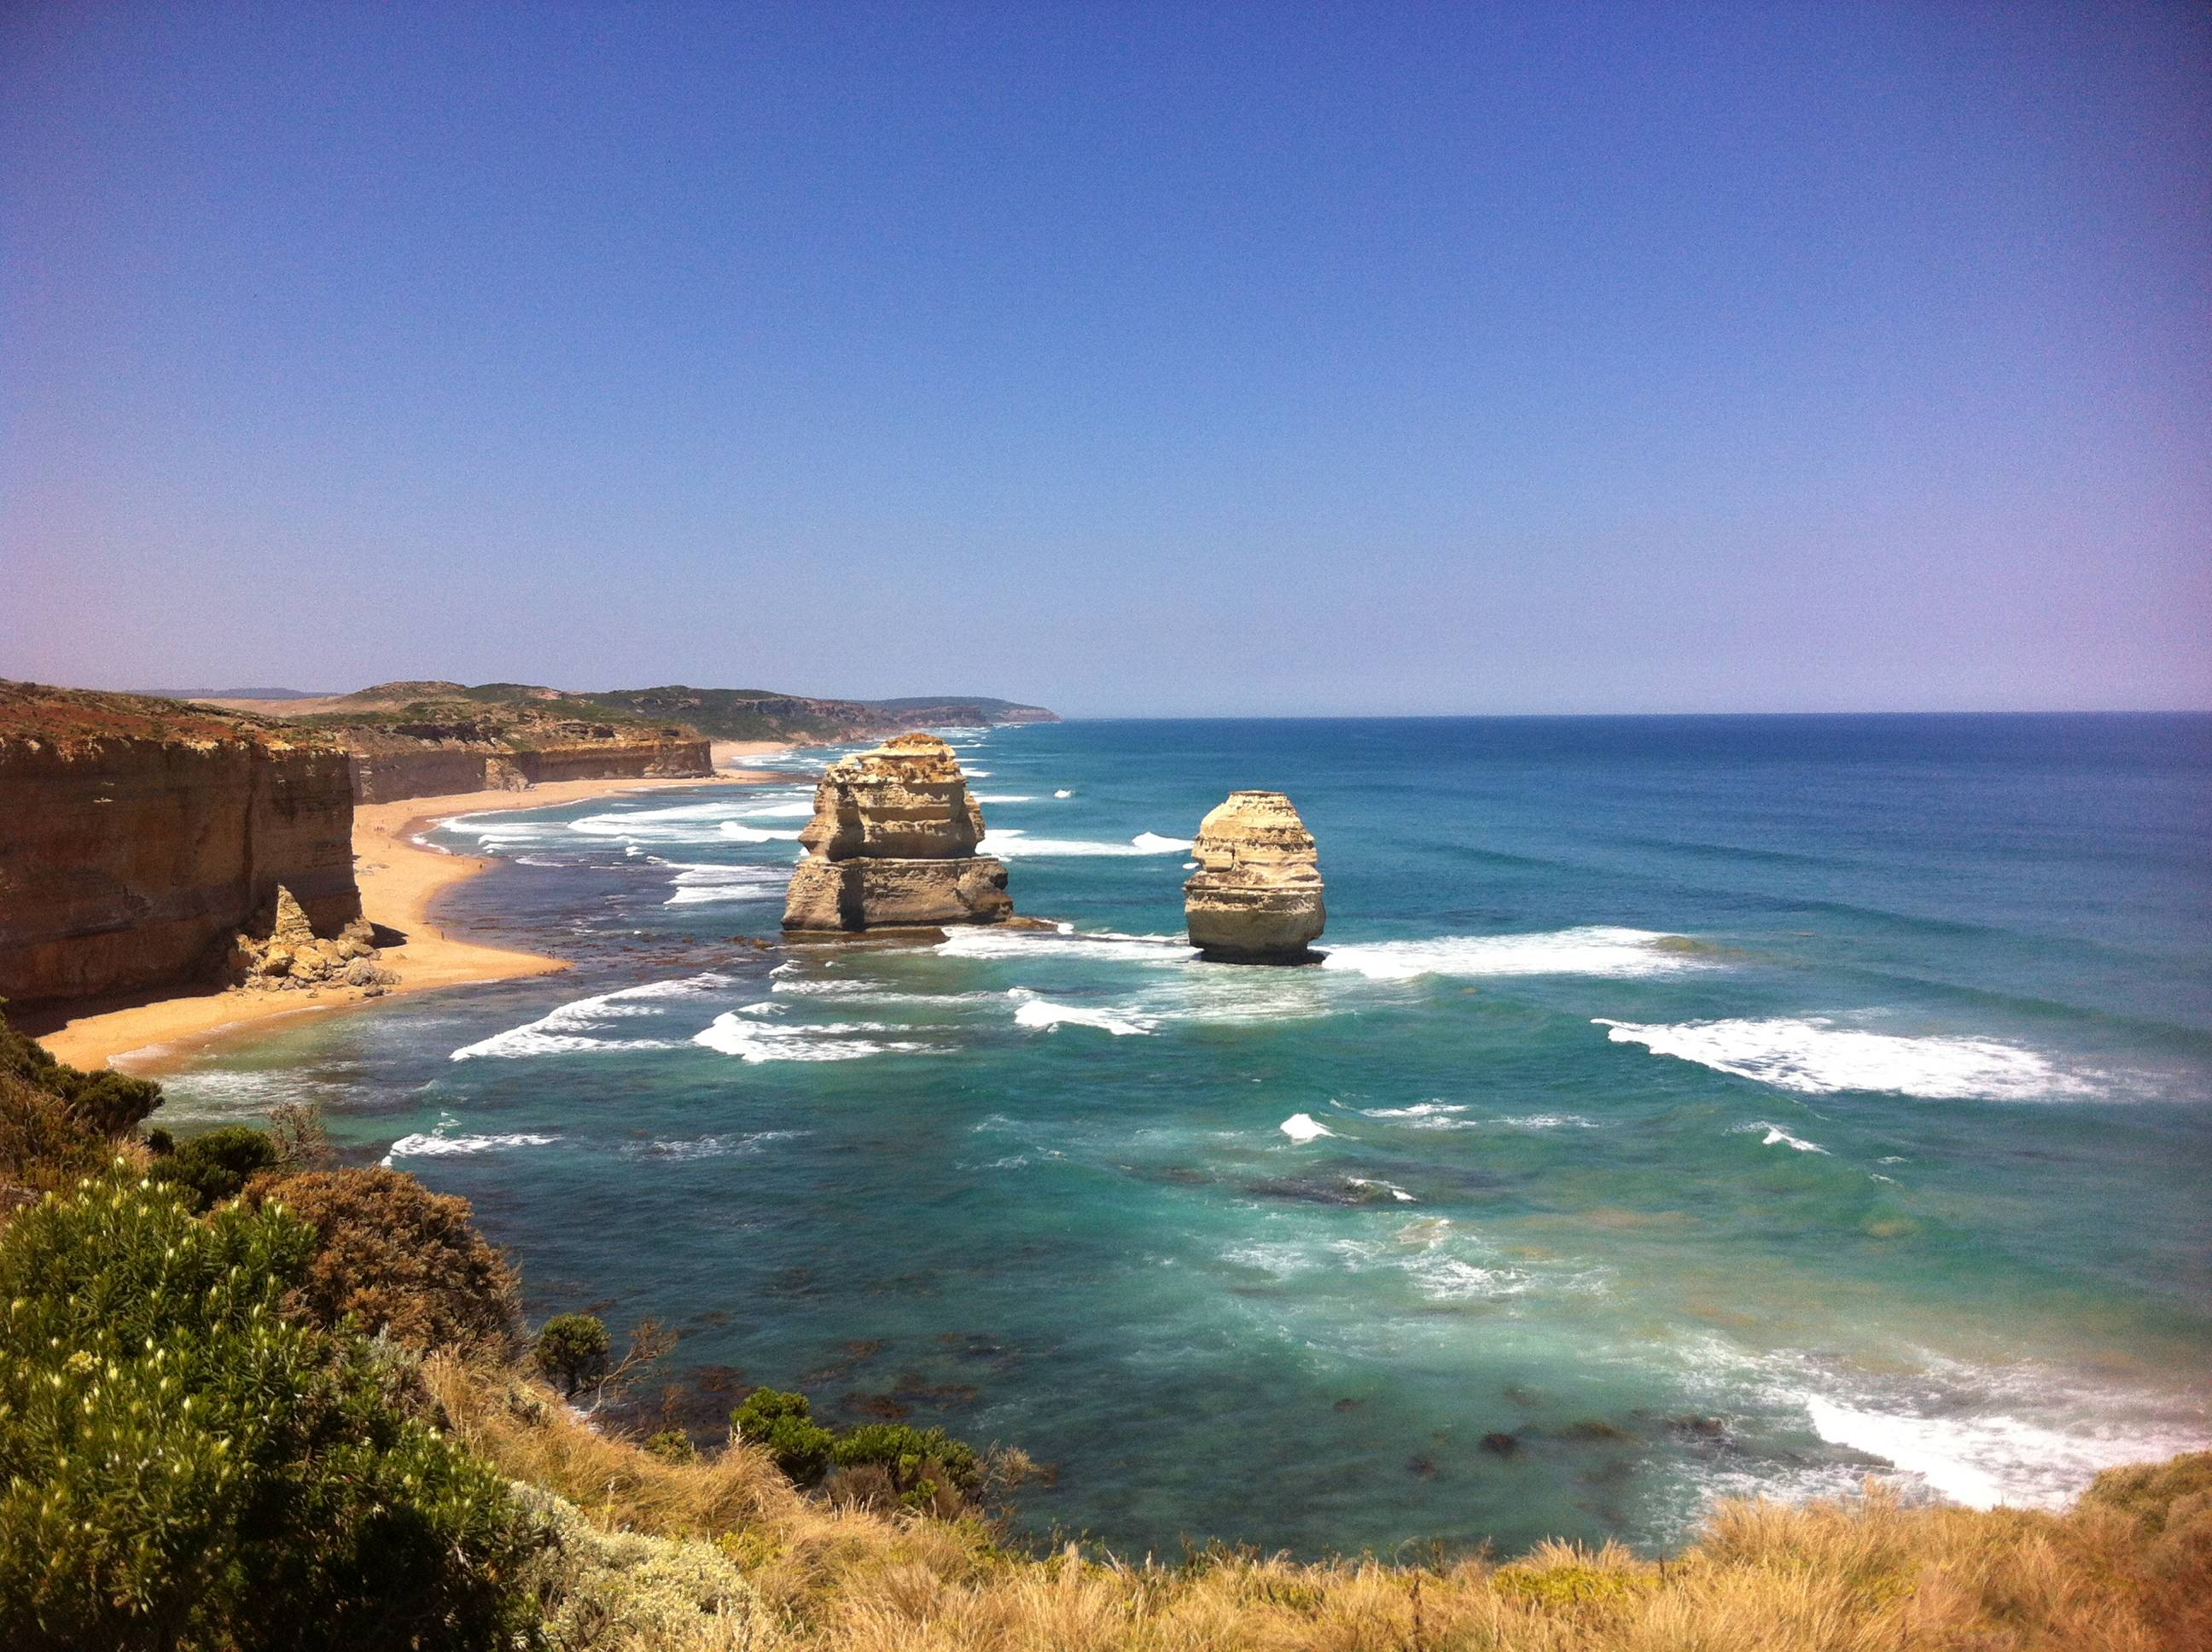 Photo 1: The great ocean road